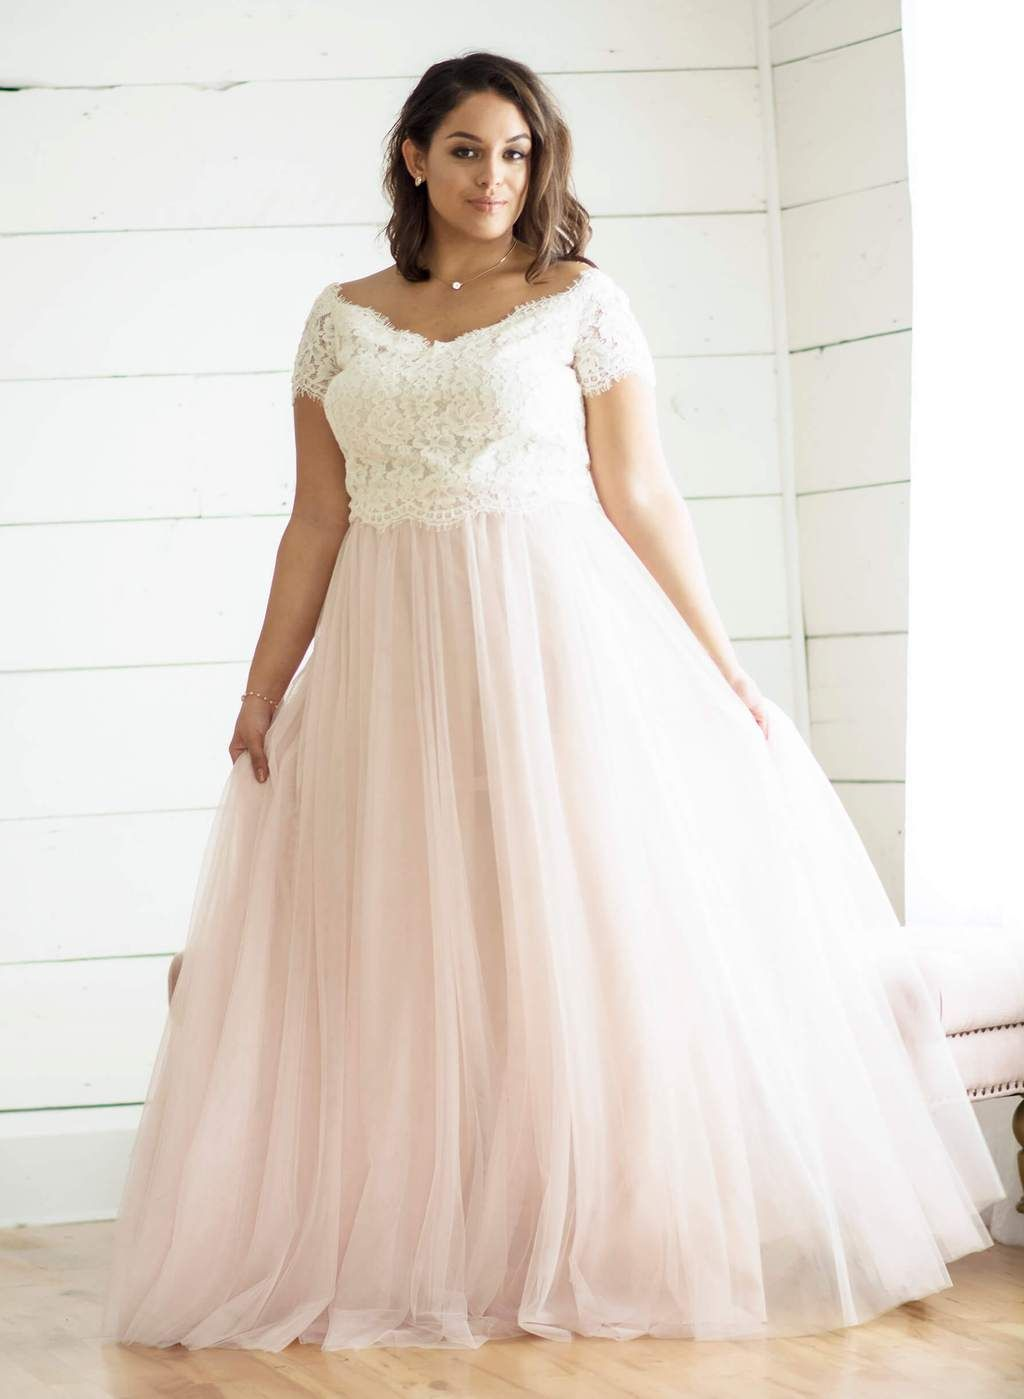 Plus Size Bridesmaid Separates By Love Tanya Zenia Lace Top And